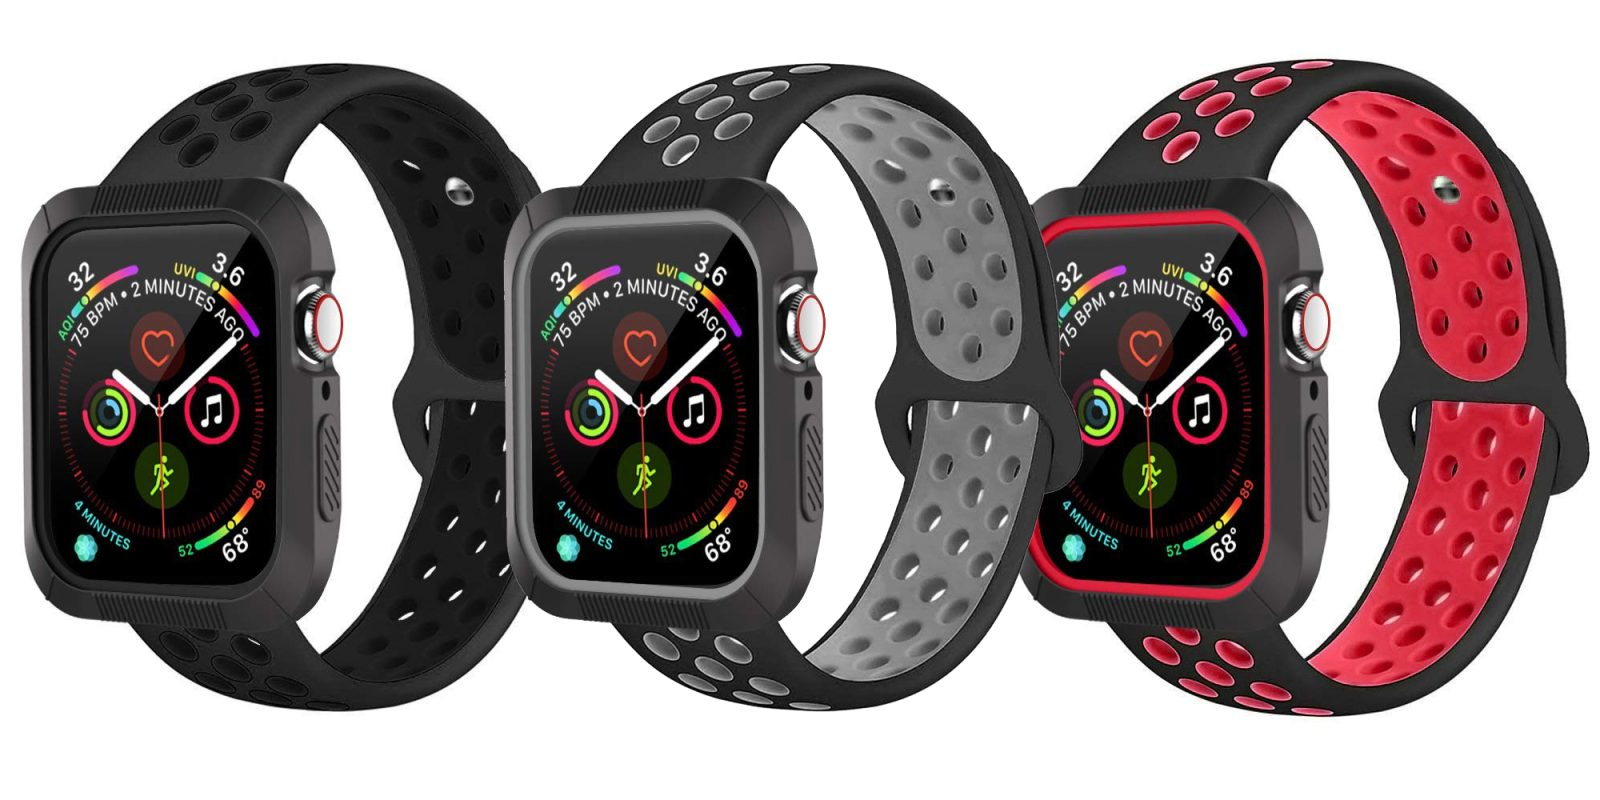 54cc7e3a8 Get the Nike look on your Apple Watch for a fraction of Apple's cost at  just $5 shipped